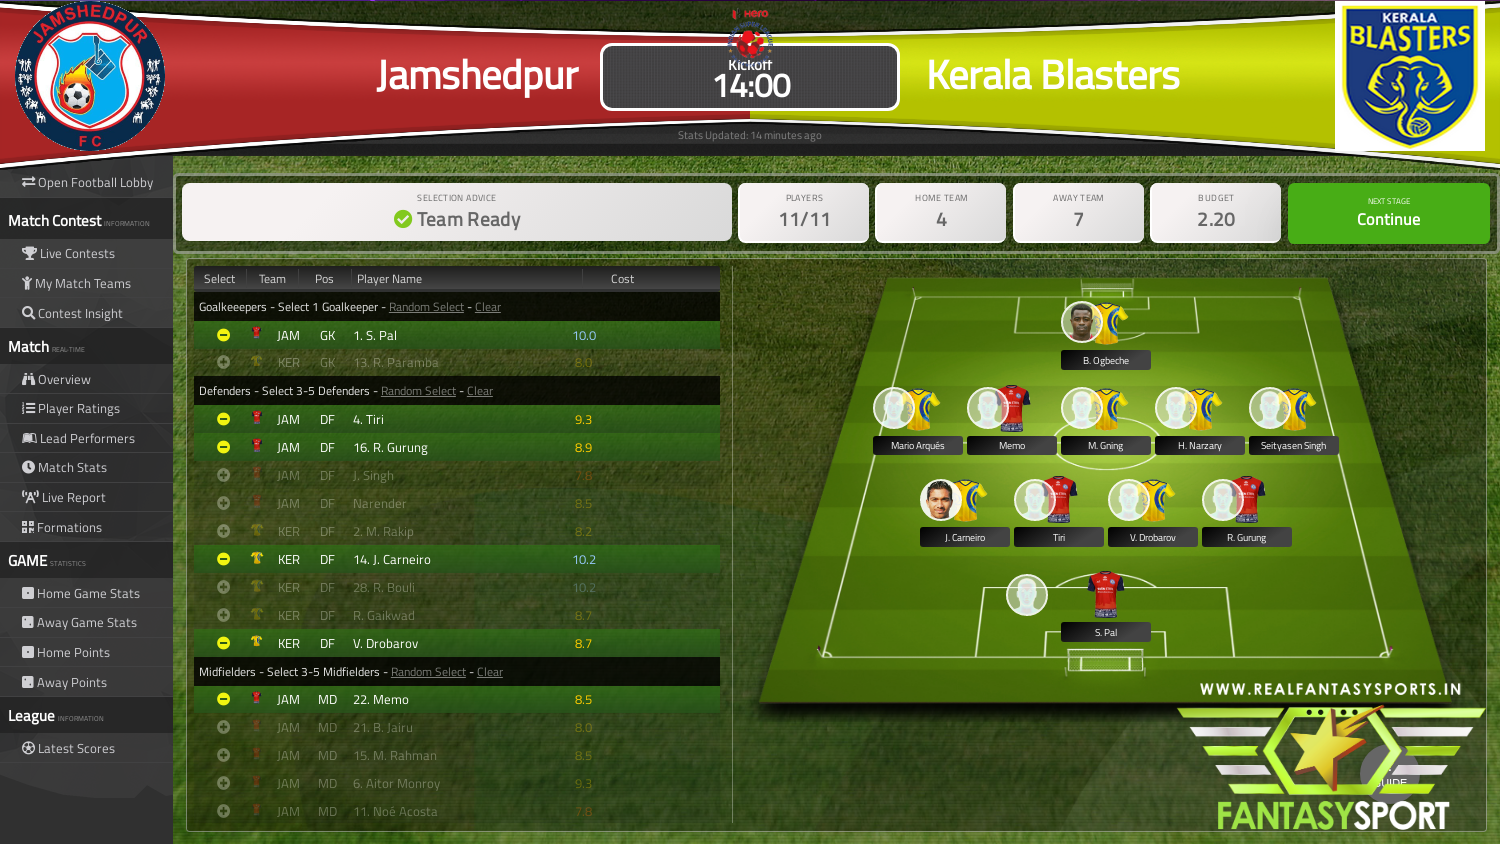 Fantasy Football Jamshedpur Vs Kerala Blasters Sunday 19th January 2020